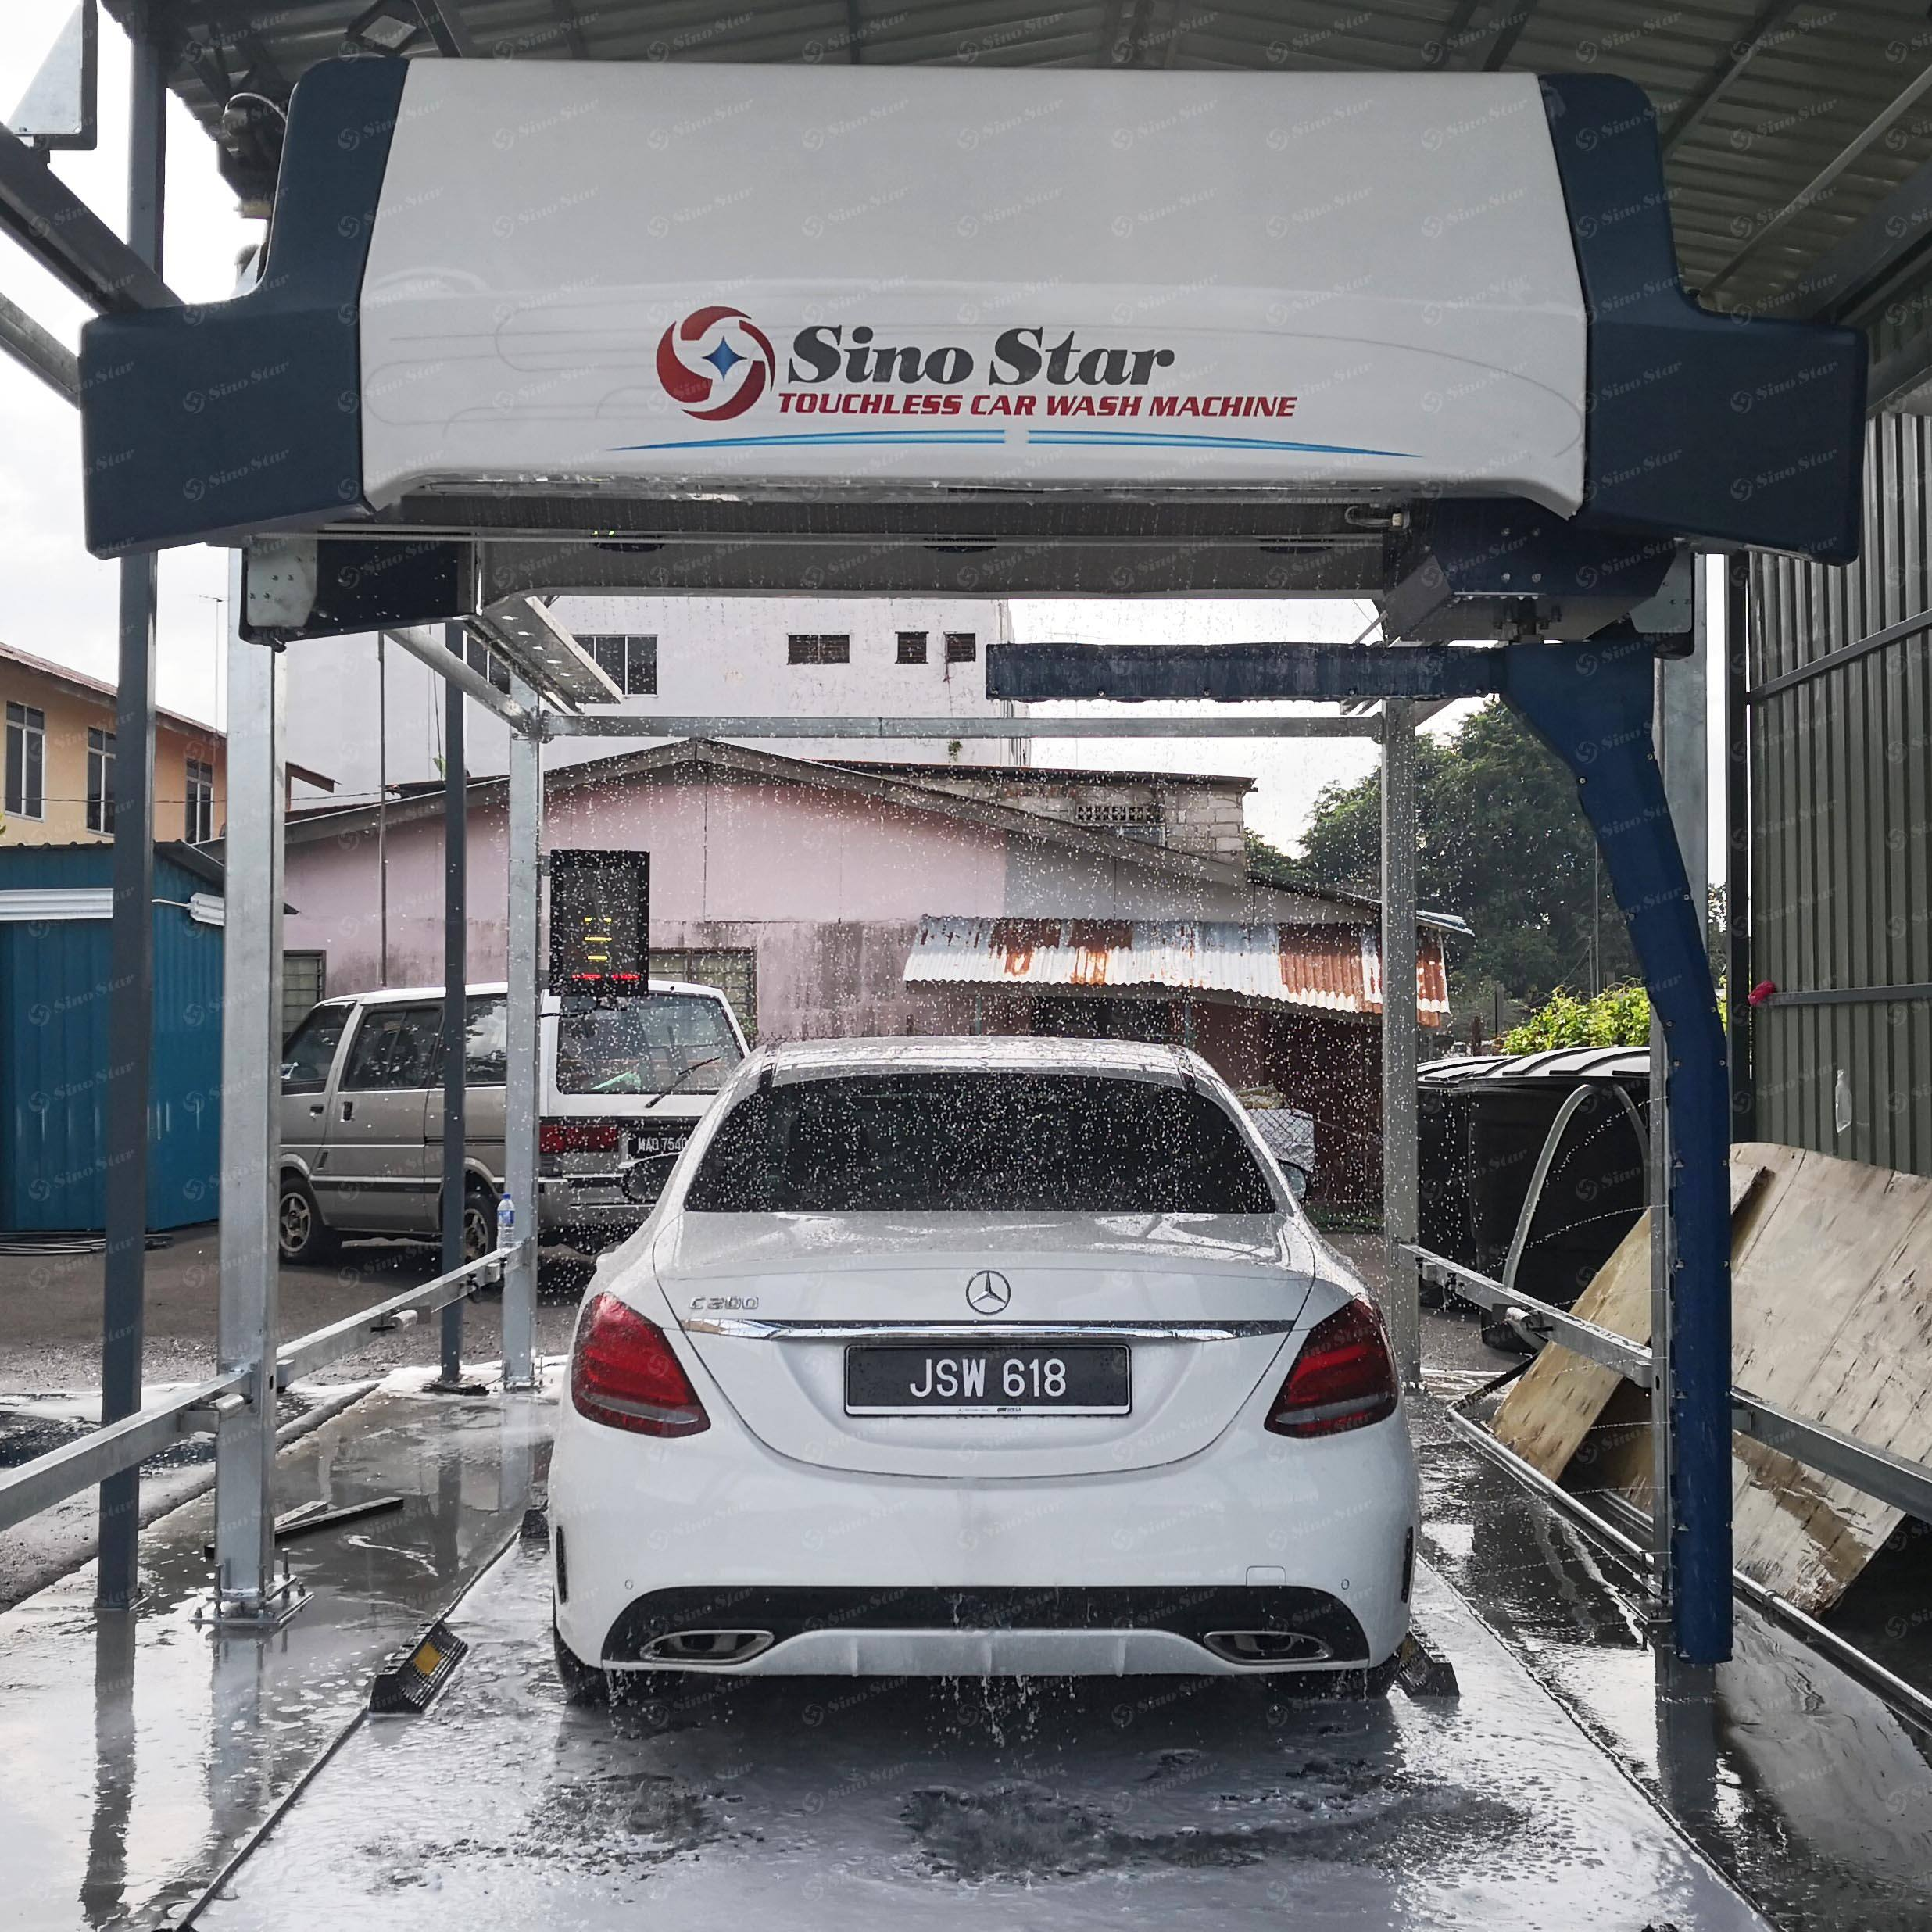 SINO STAR car wash machine fully automatic high pressure steam cleaning machine With Dryer brushes or touchless free